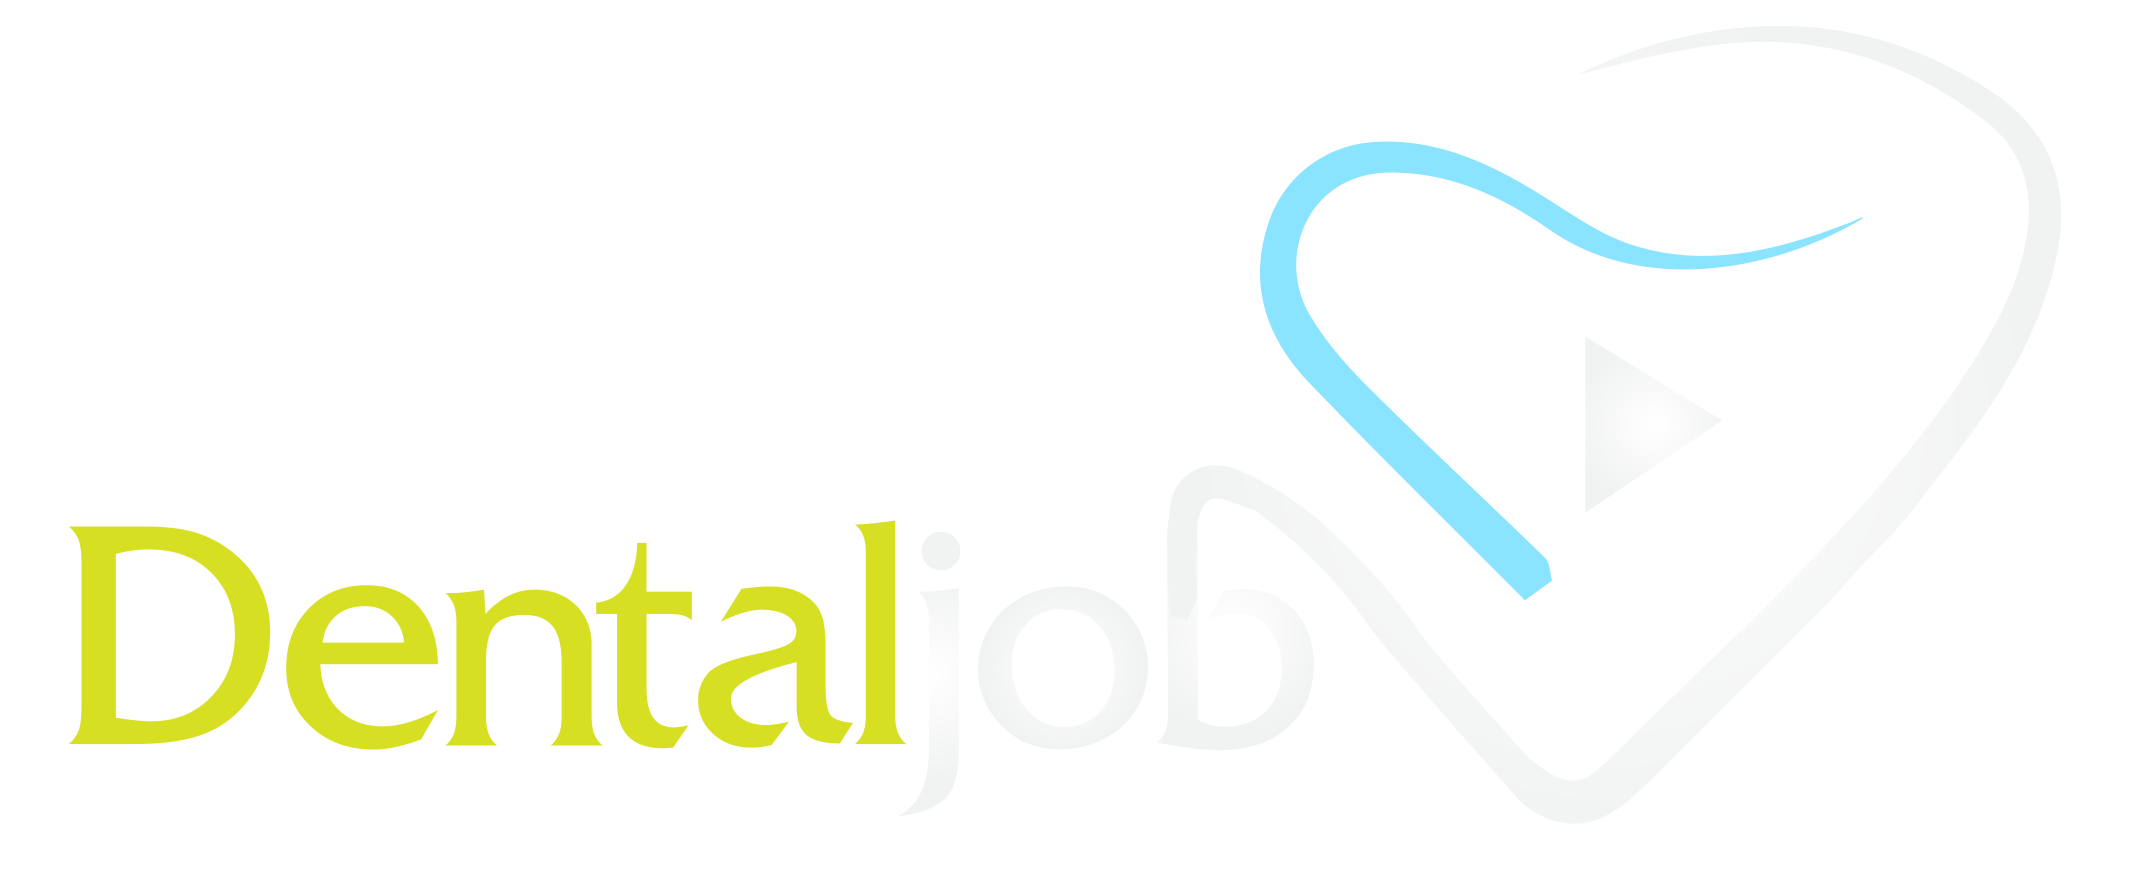 dental job video is now transforming the traditional dental job roswell ga 04 18 2017 press release jet the dental job video is a kind of platform which allows dental employers to view and review job seekers